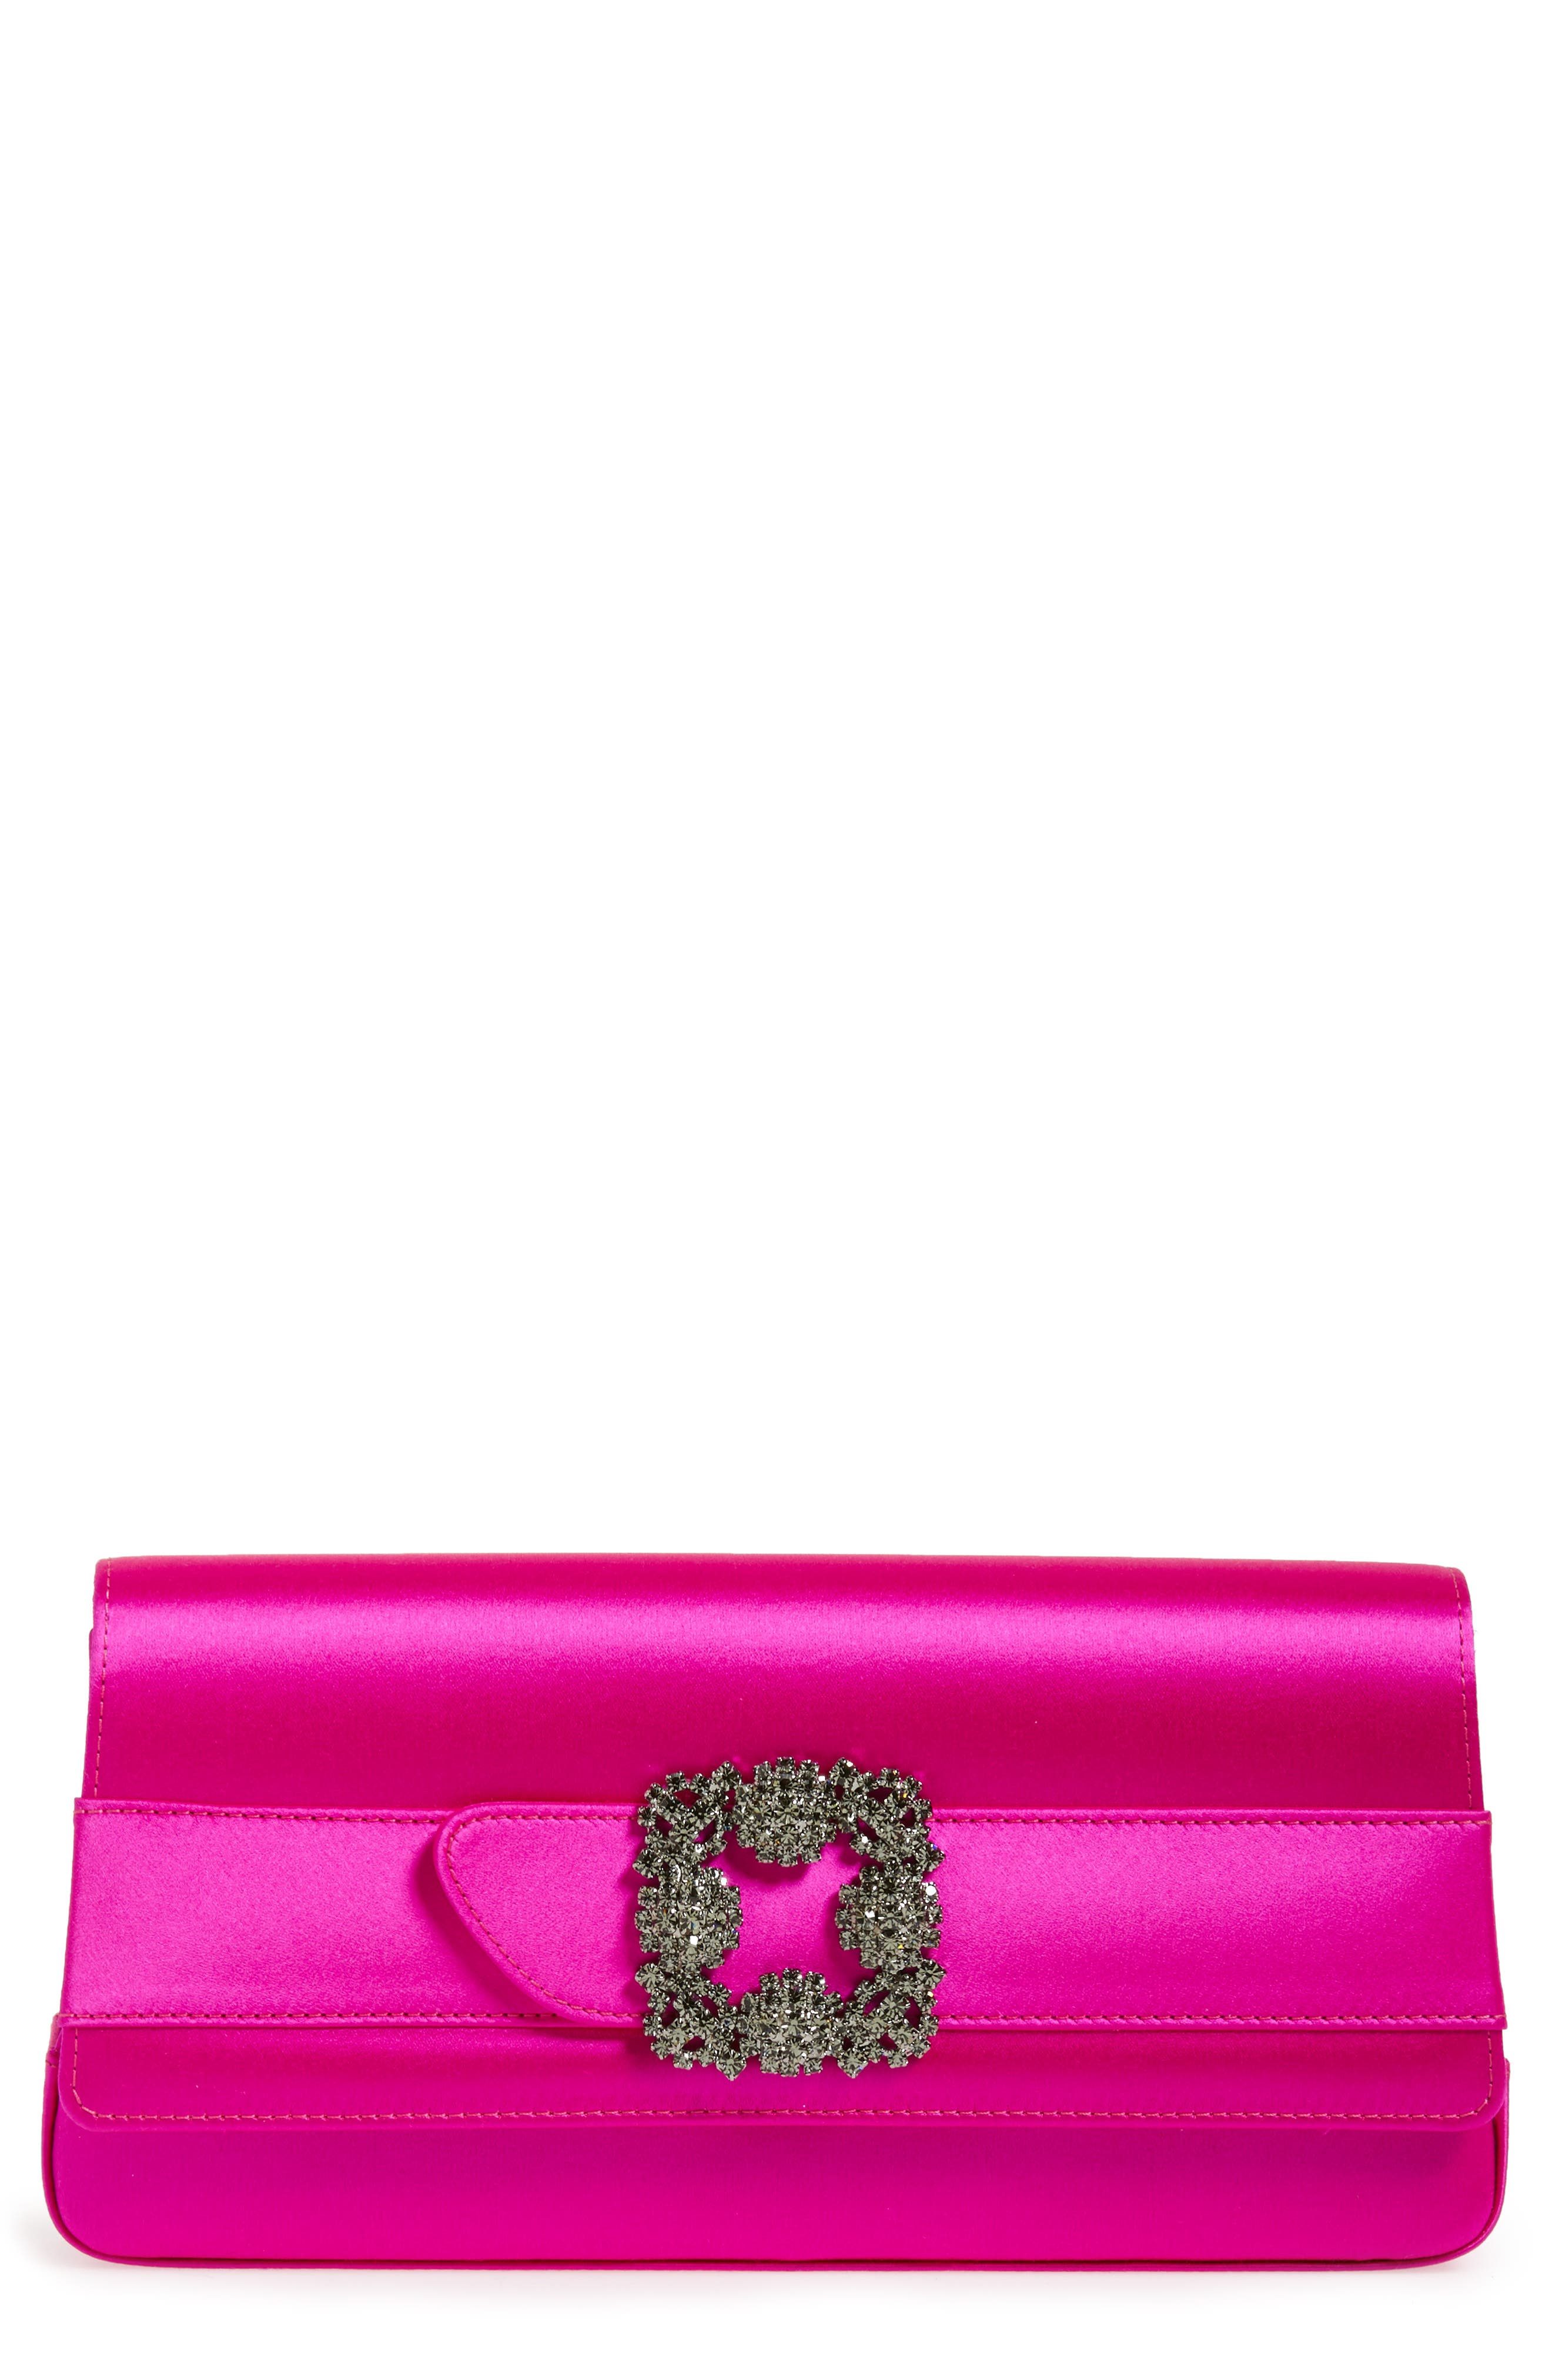 'Gothisi' Clutch,                             Alternate thumbnail 42, color,